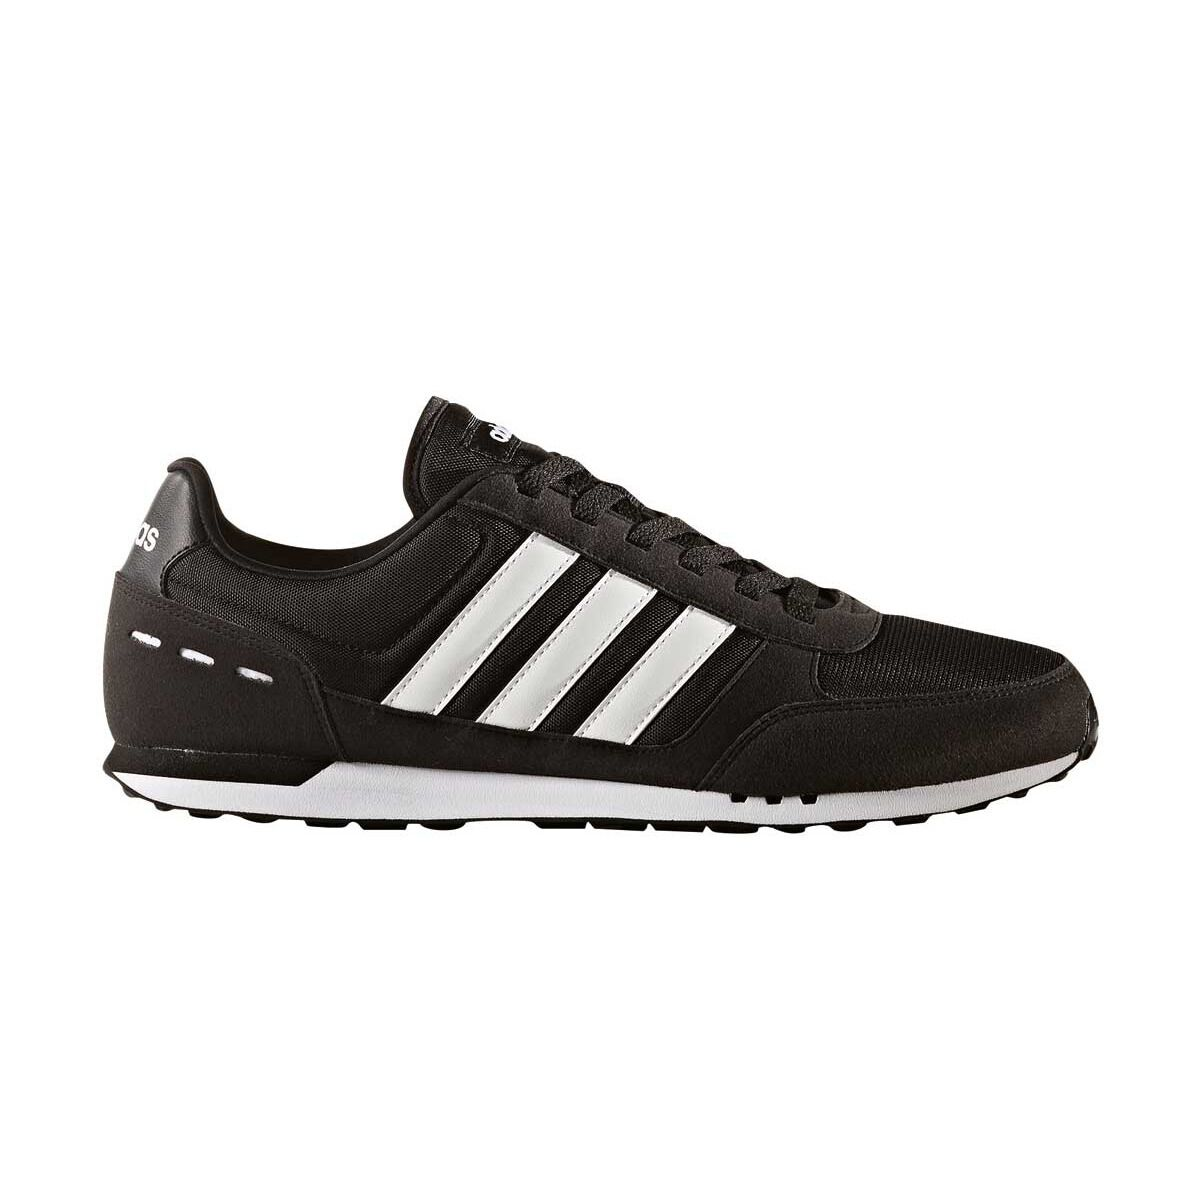 adidas Neo City Racer Mens Casual Shoes Black / White US 10